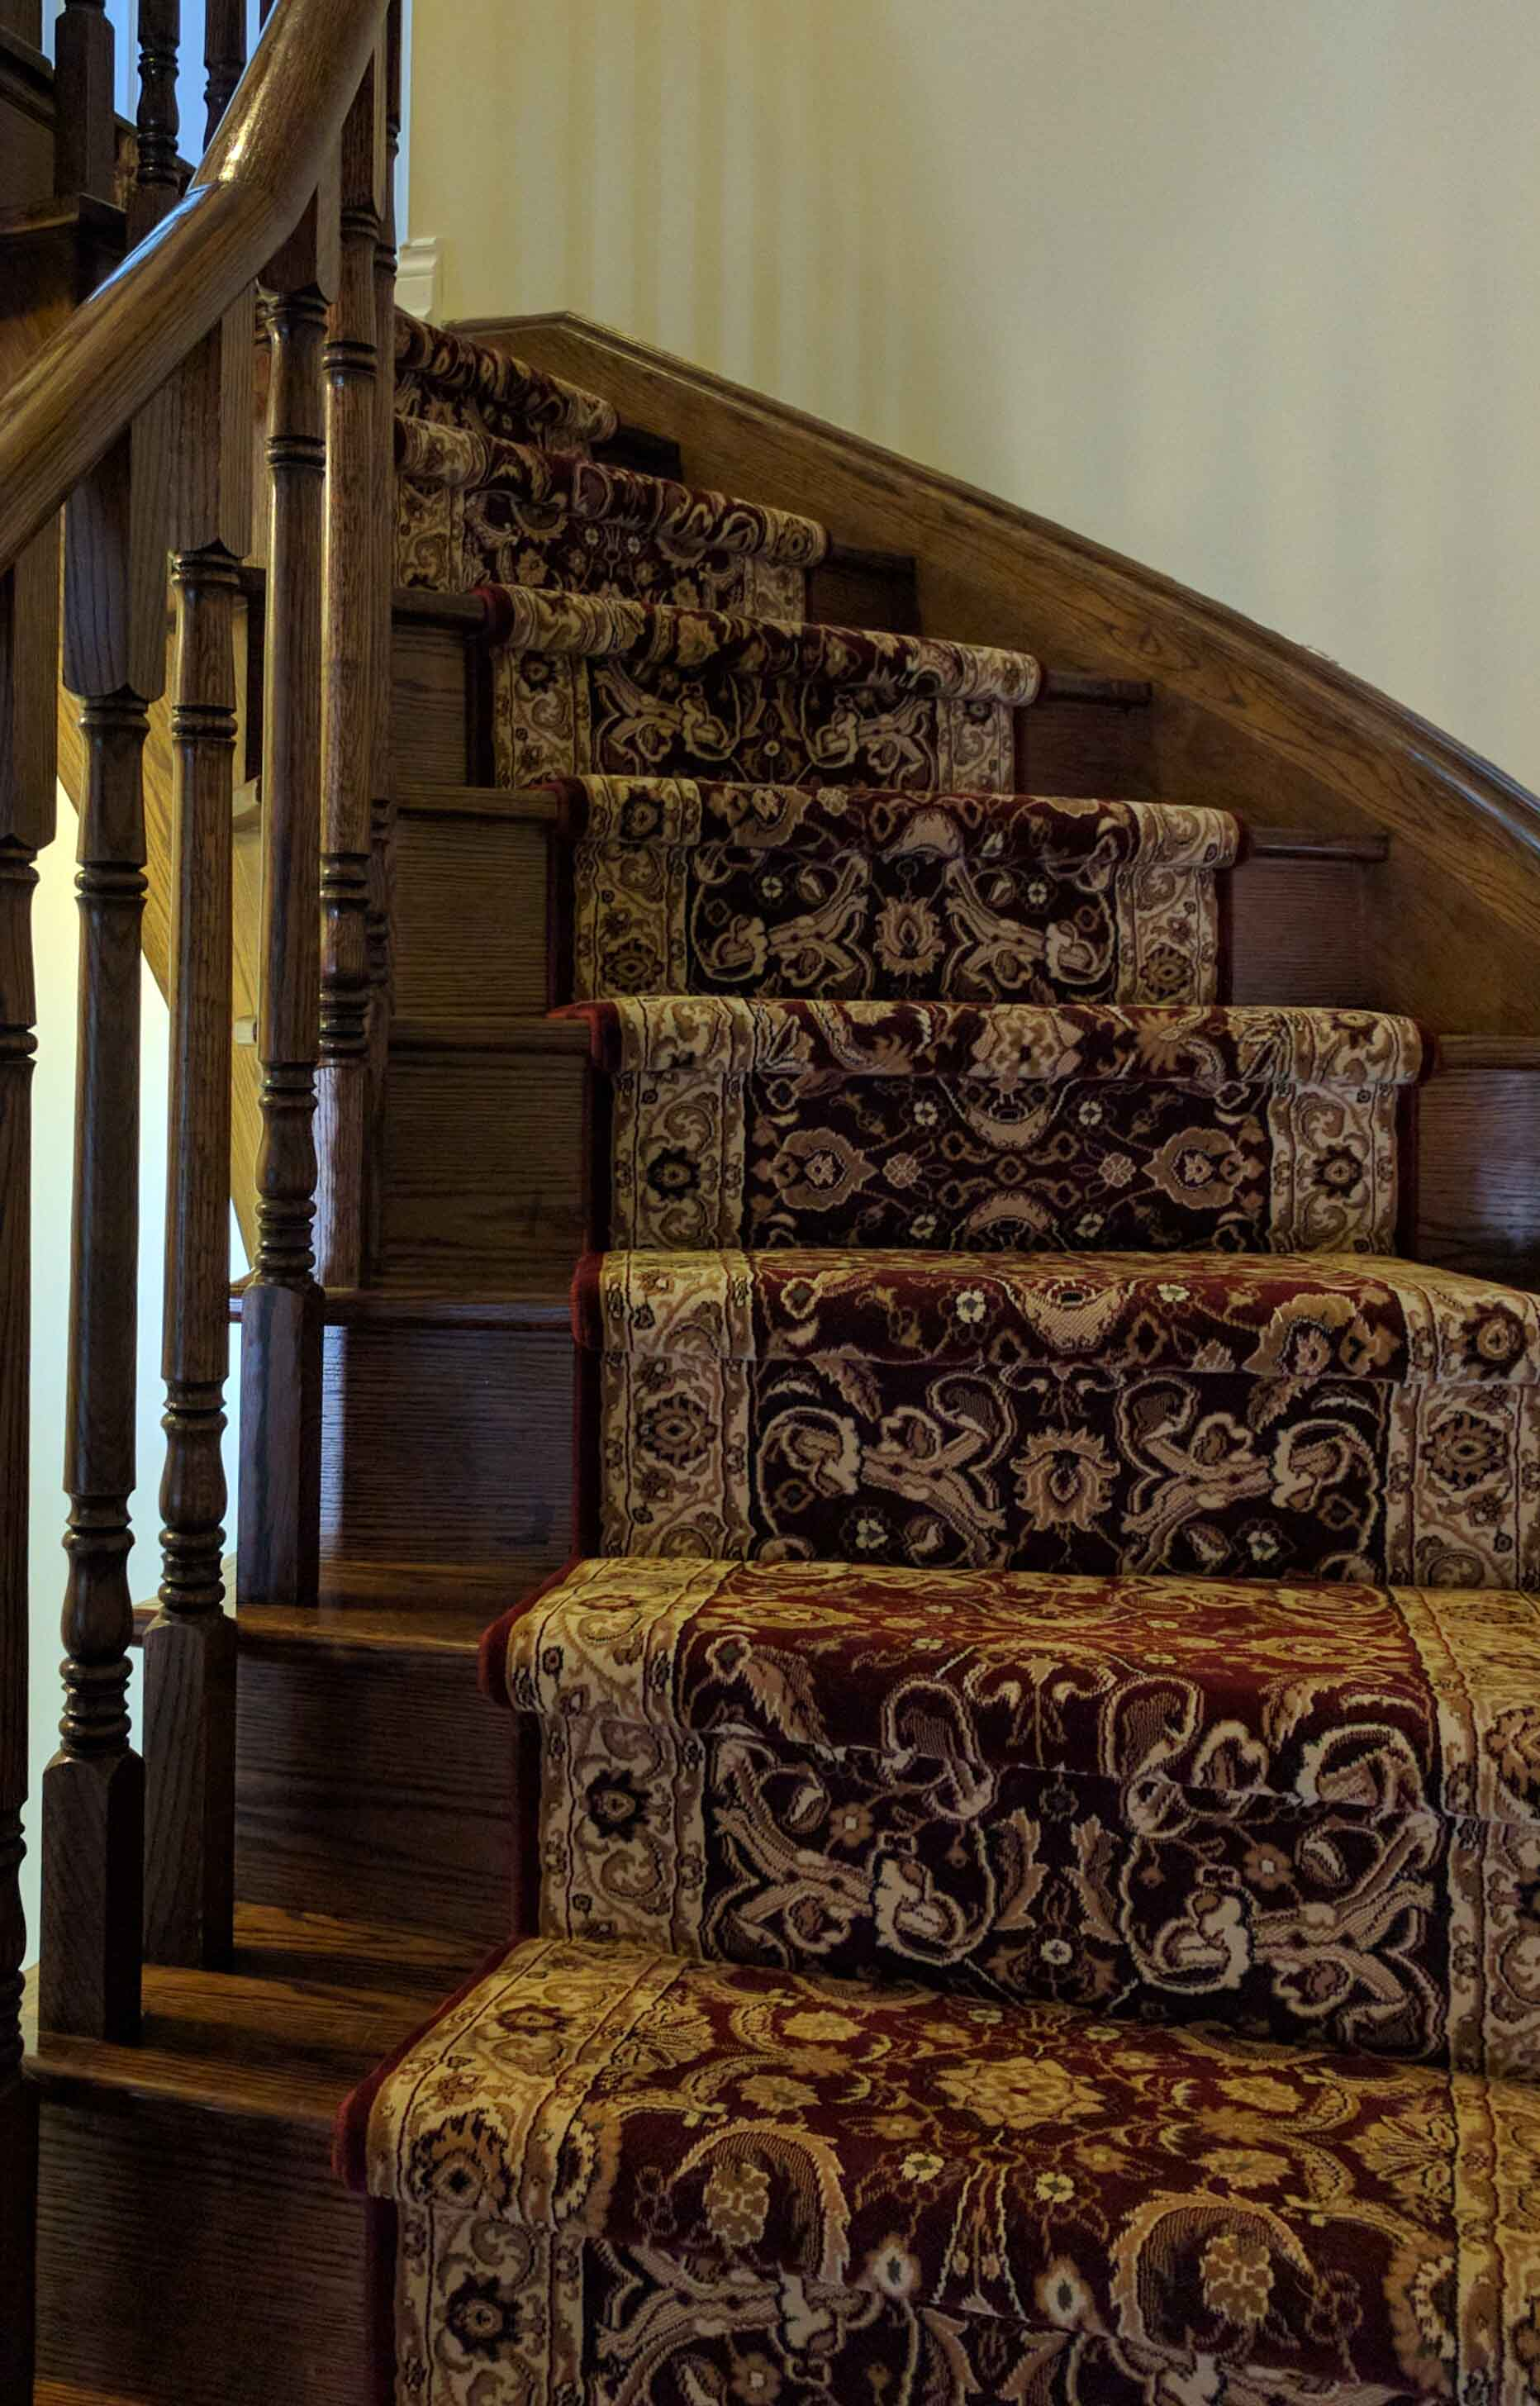 Merveilleux Persian Red Carpet Runner For Basement Staircase Carpeting Ideas And Stair  Runner Options ...